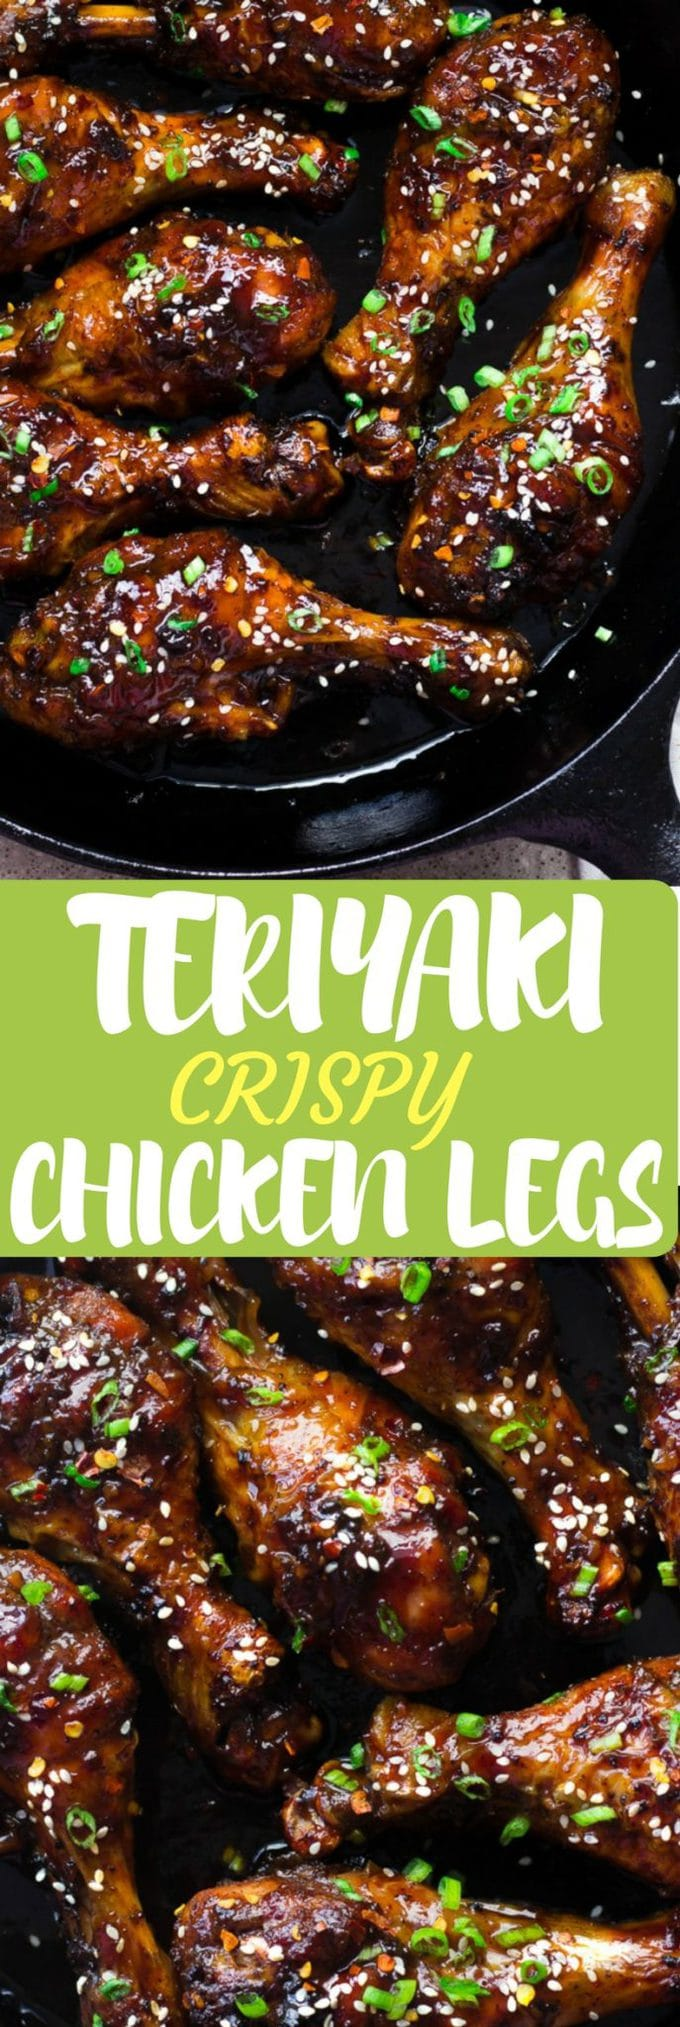 This Teriyaki crispy chicken is a perfect plan B recipe. This easy teriyaki sauce cooks up in minutes and the crispy chicken legs are simple too and much healthier than fried chicken. Just a couple of steps to prep the chicken and then pop it into the oven and let it bake until it's crispy, tender and juicy then slather on the sweet sticky savory teriyaki sauce!